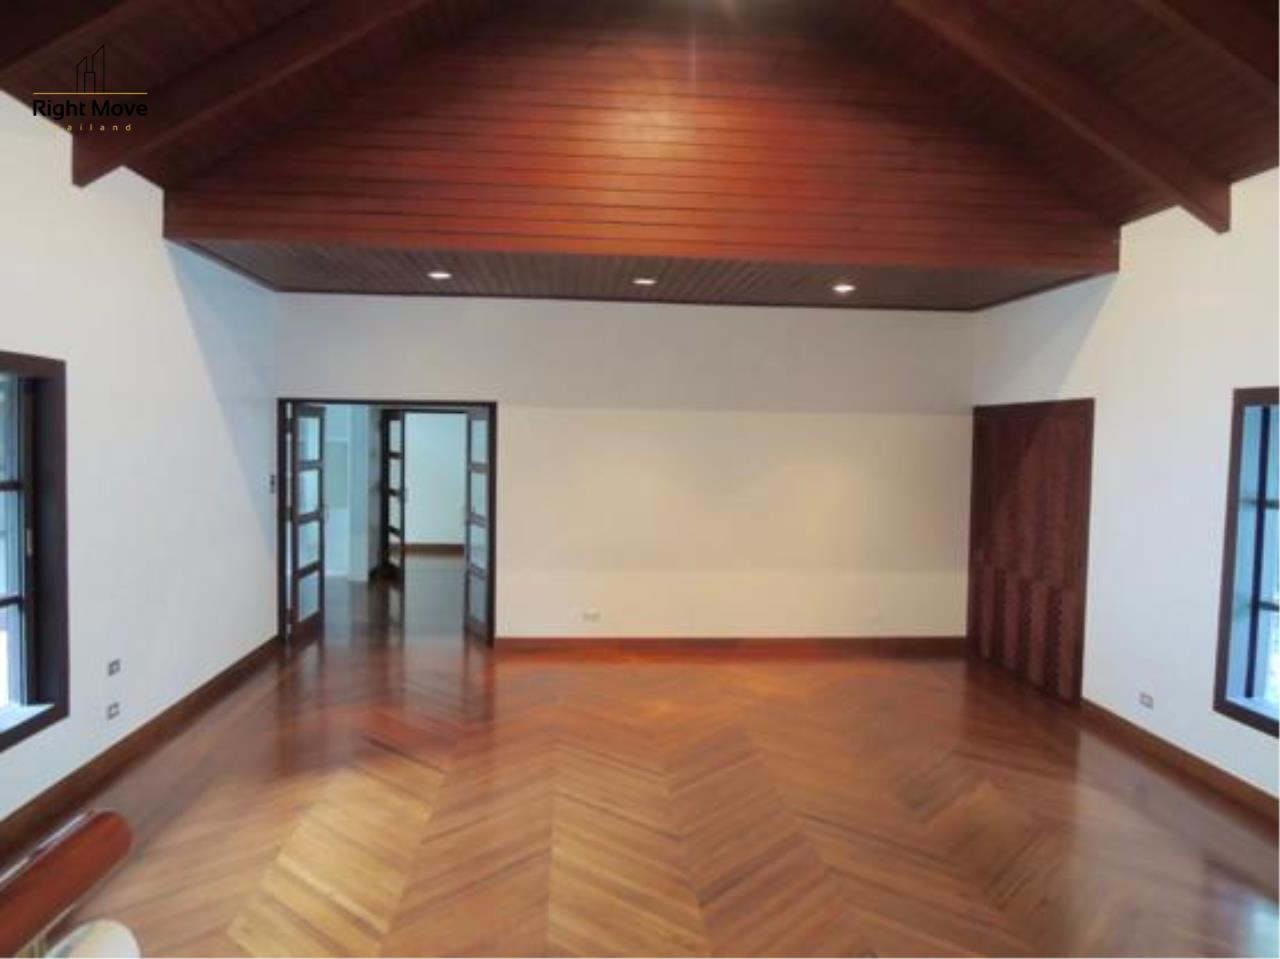 Right Move Thailand Agency's HR663 House With Private Pool For Rent 350,000 THB 4 Bedrooms 1000 Sqm 9